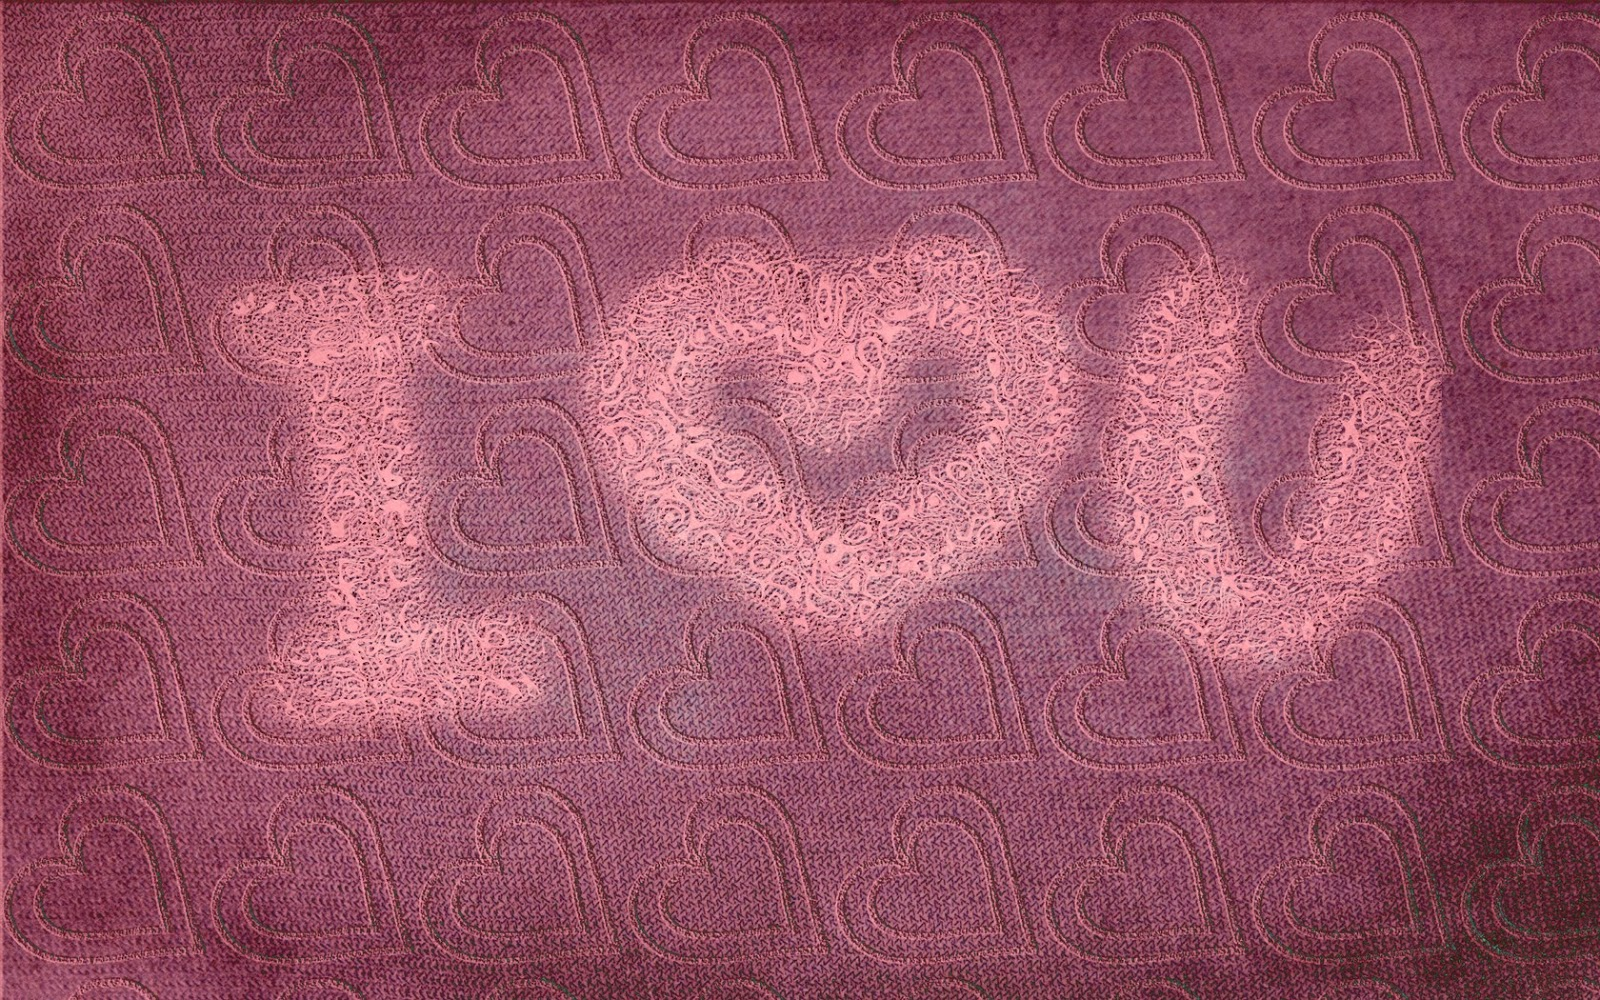 Love Wallpaper On Tumblr : Tumblr Love Backgrounds 16949 1600x1000 px ~ HDWallSource.com